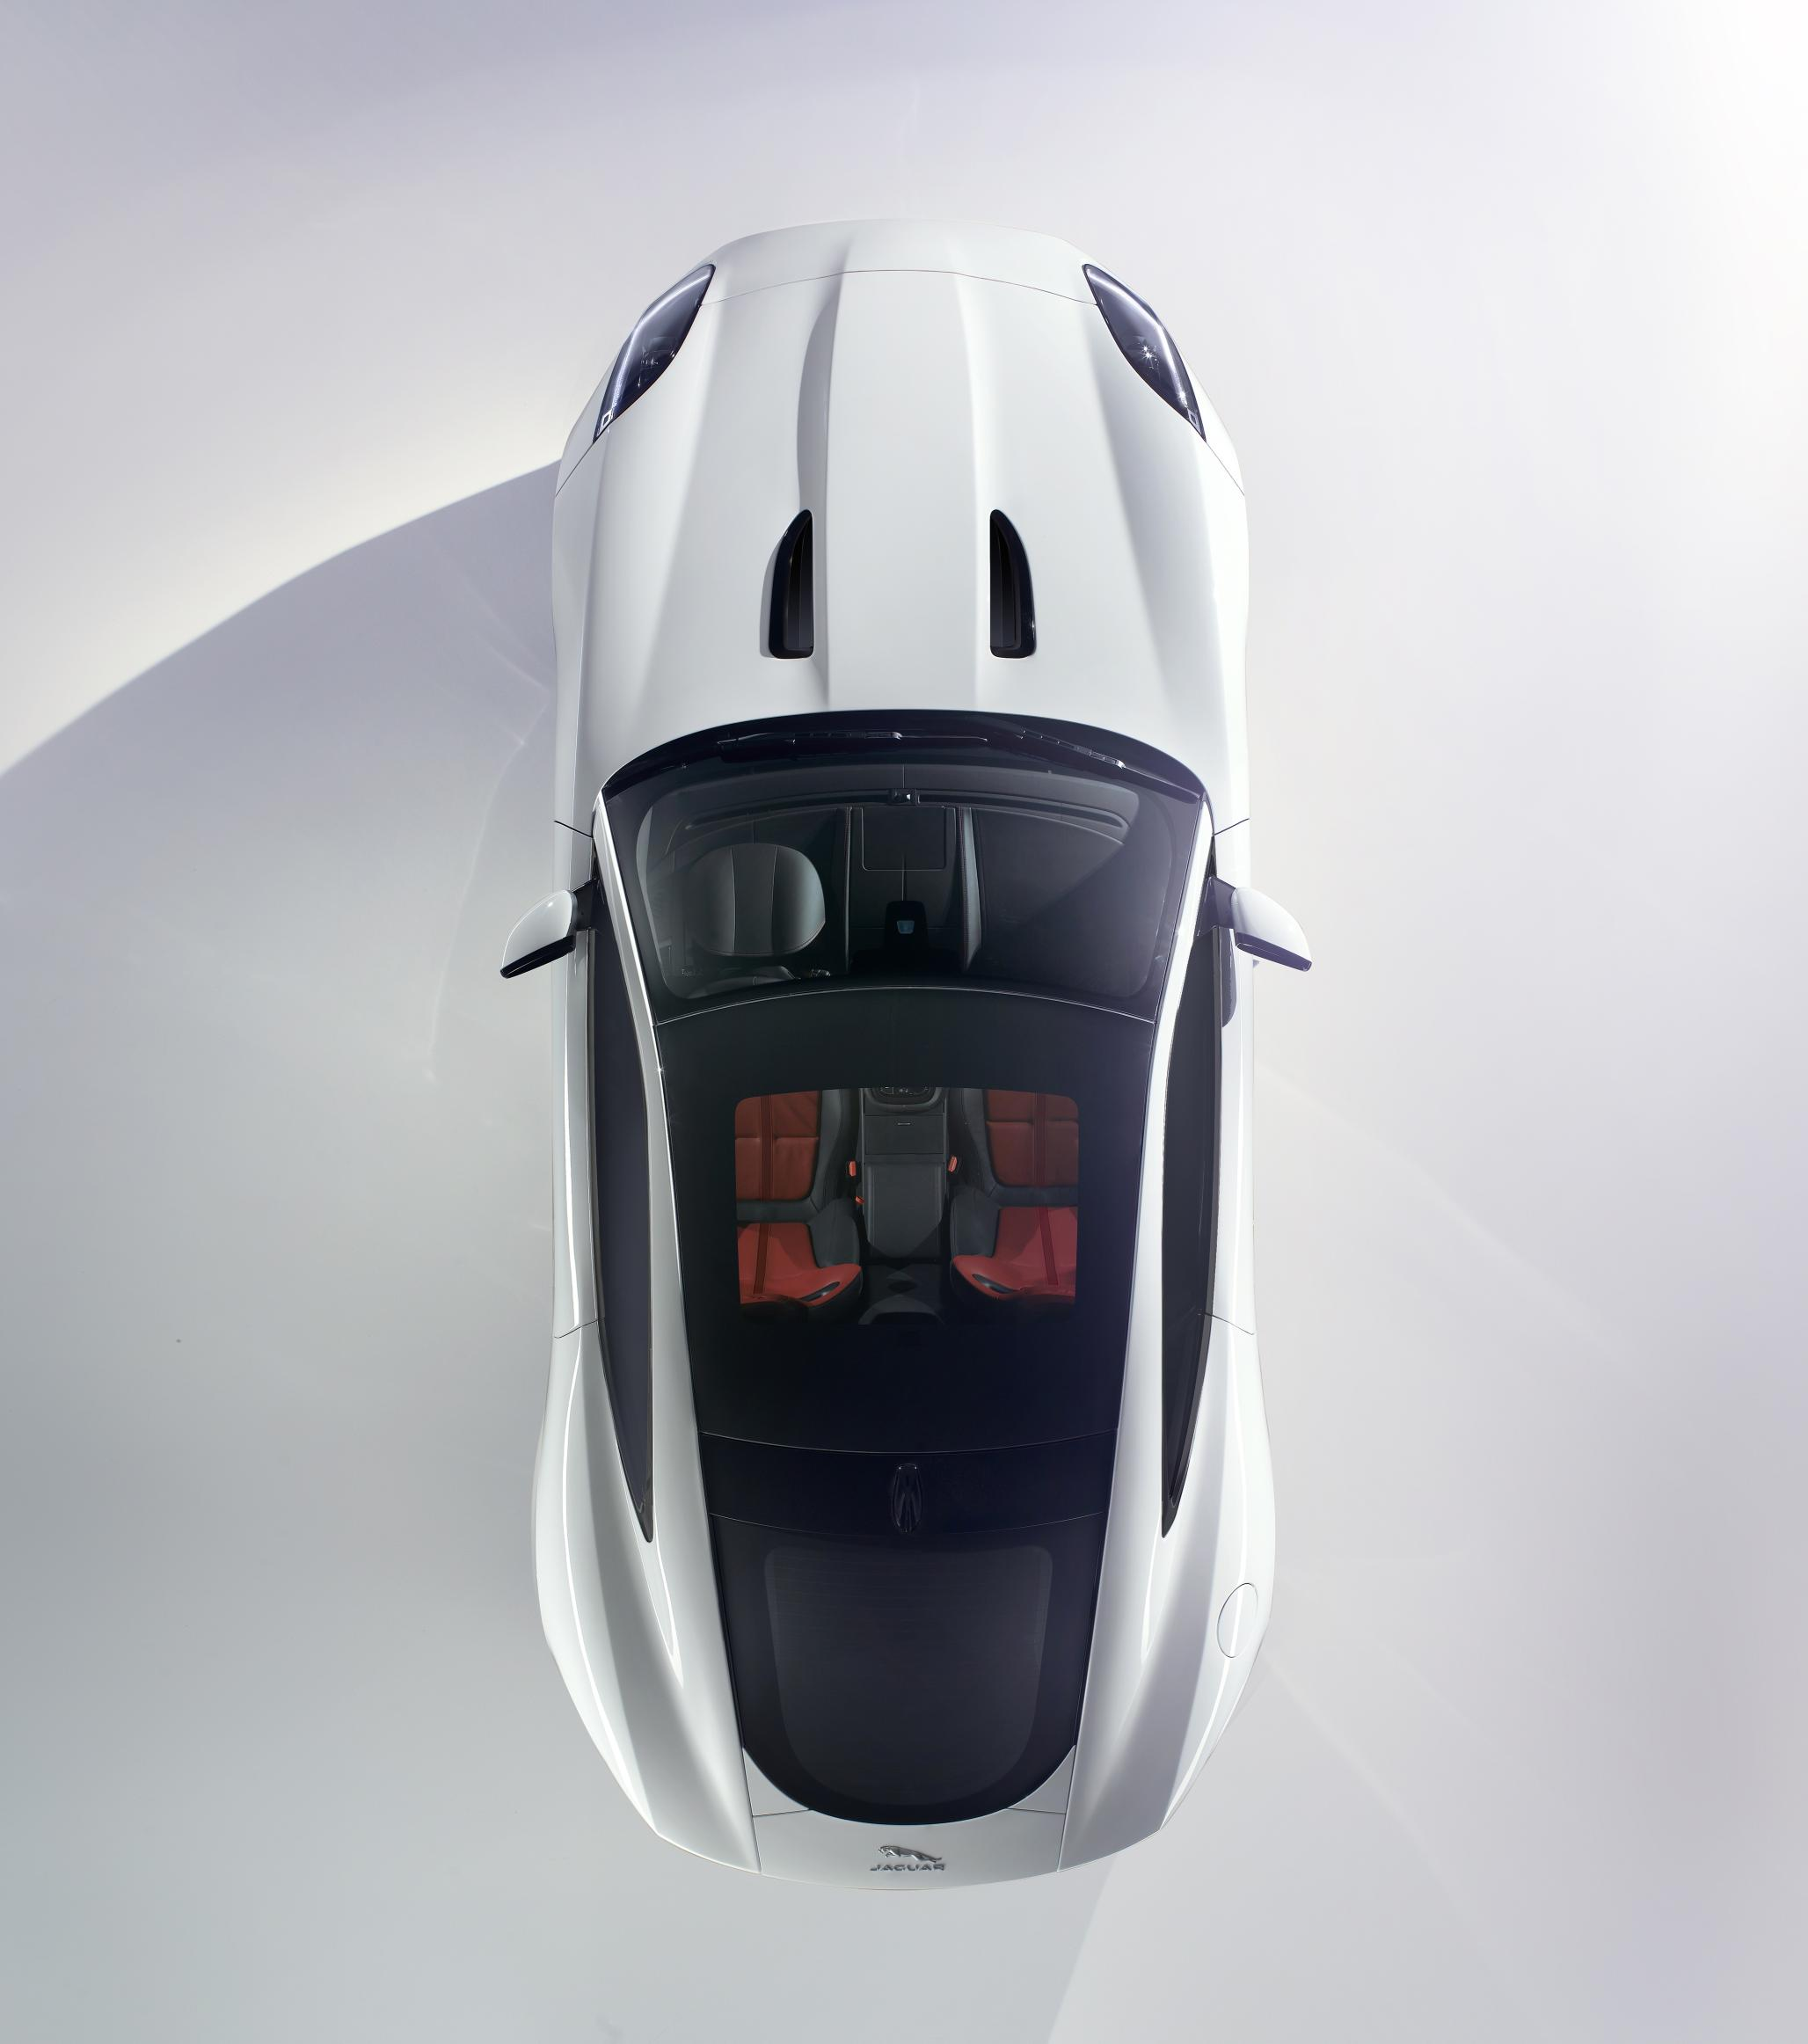 Jaguar F-Type Coupe To Debut In LA: Latest News – Surf4cars